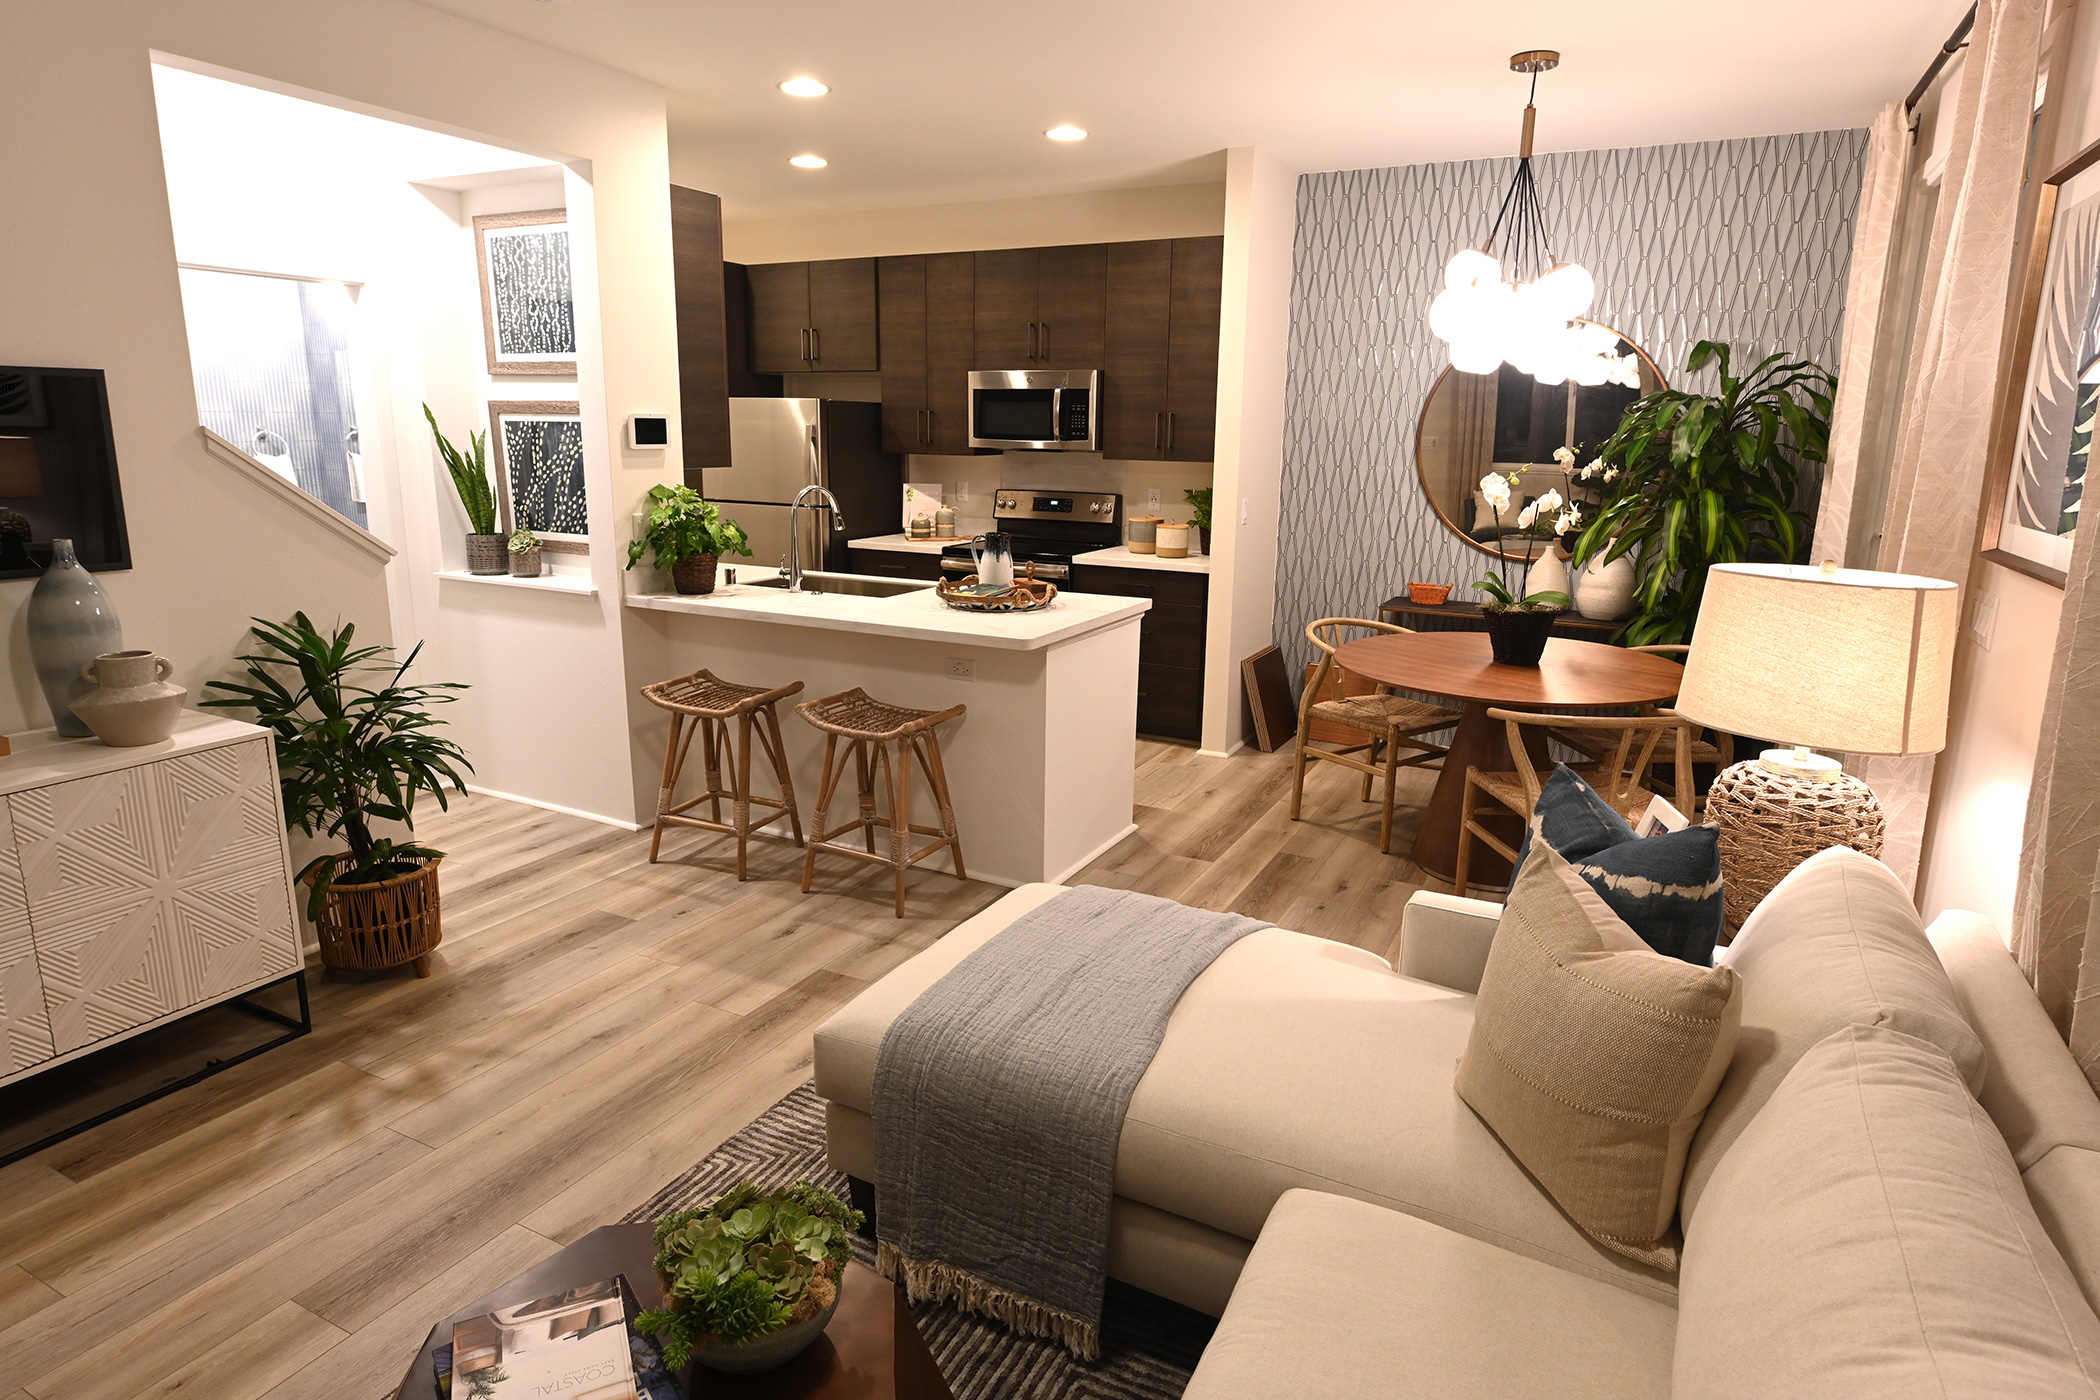 NorthPark Plan 1 - Kitchen & Living Room